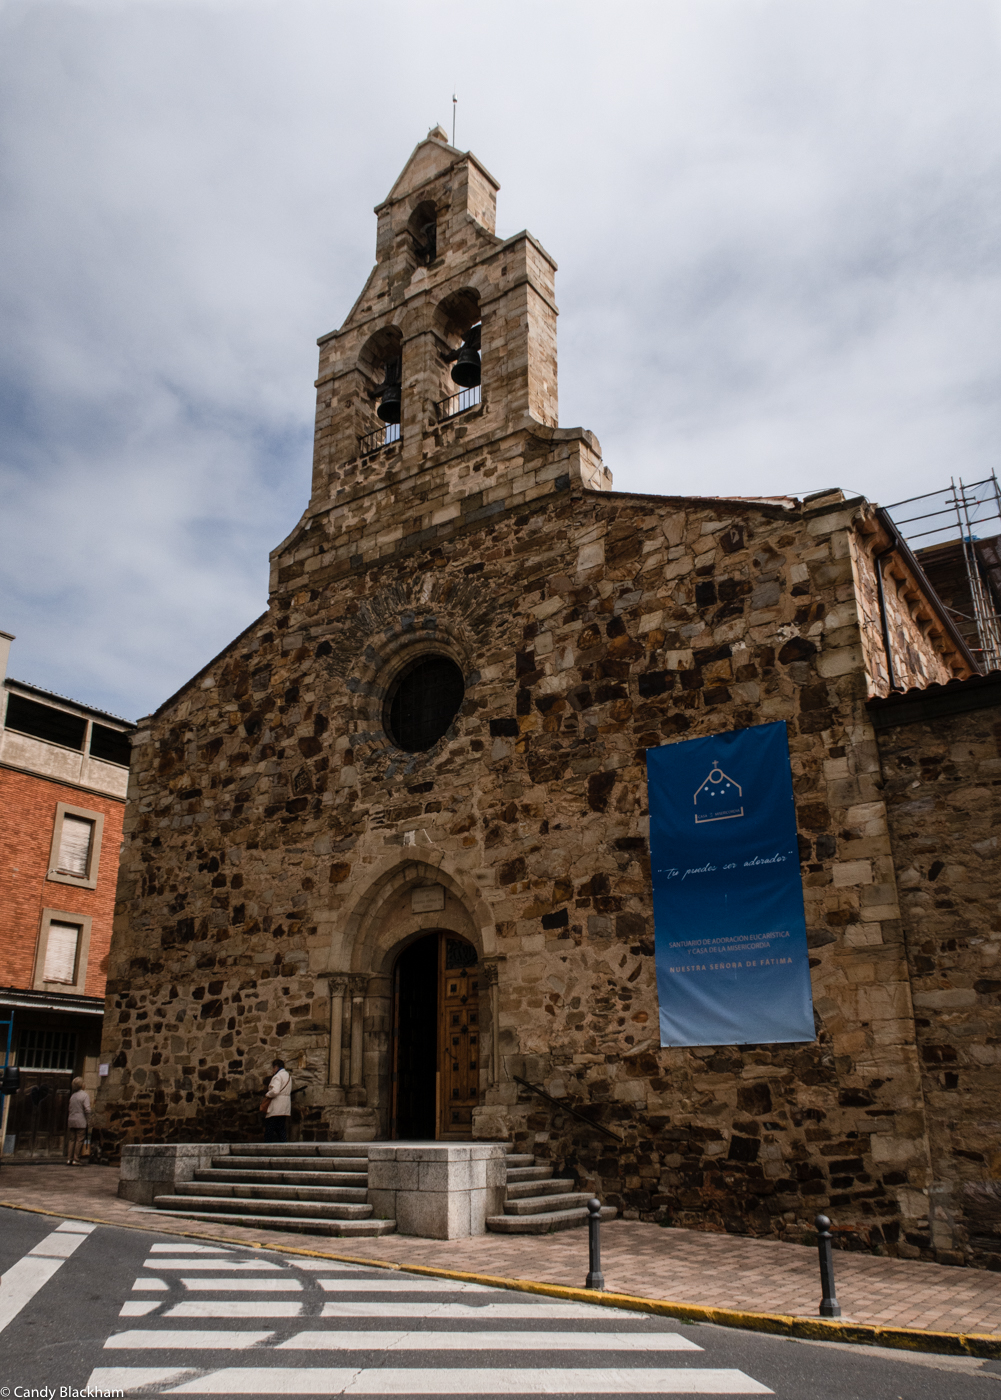 The Church of St Julian in Astorga